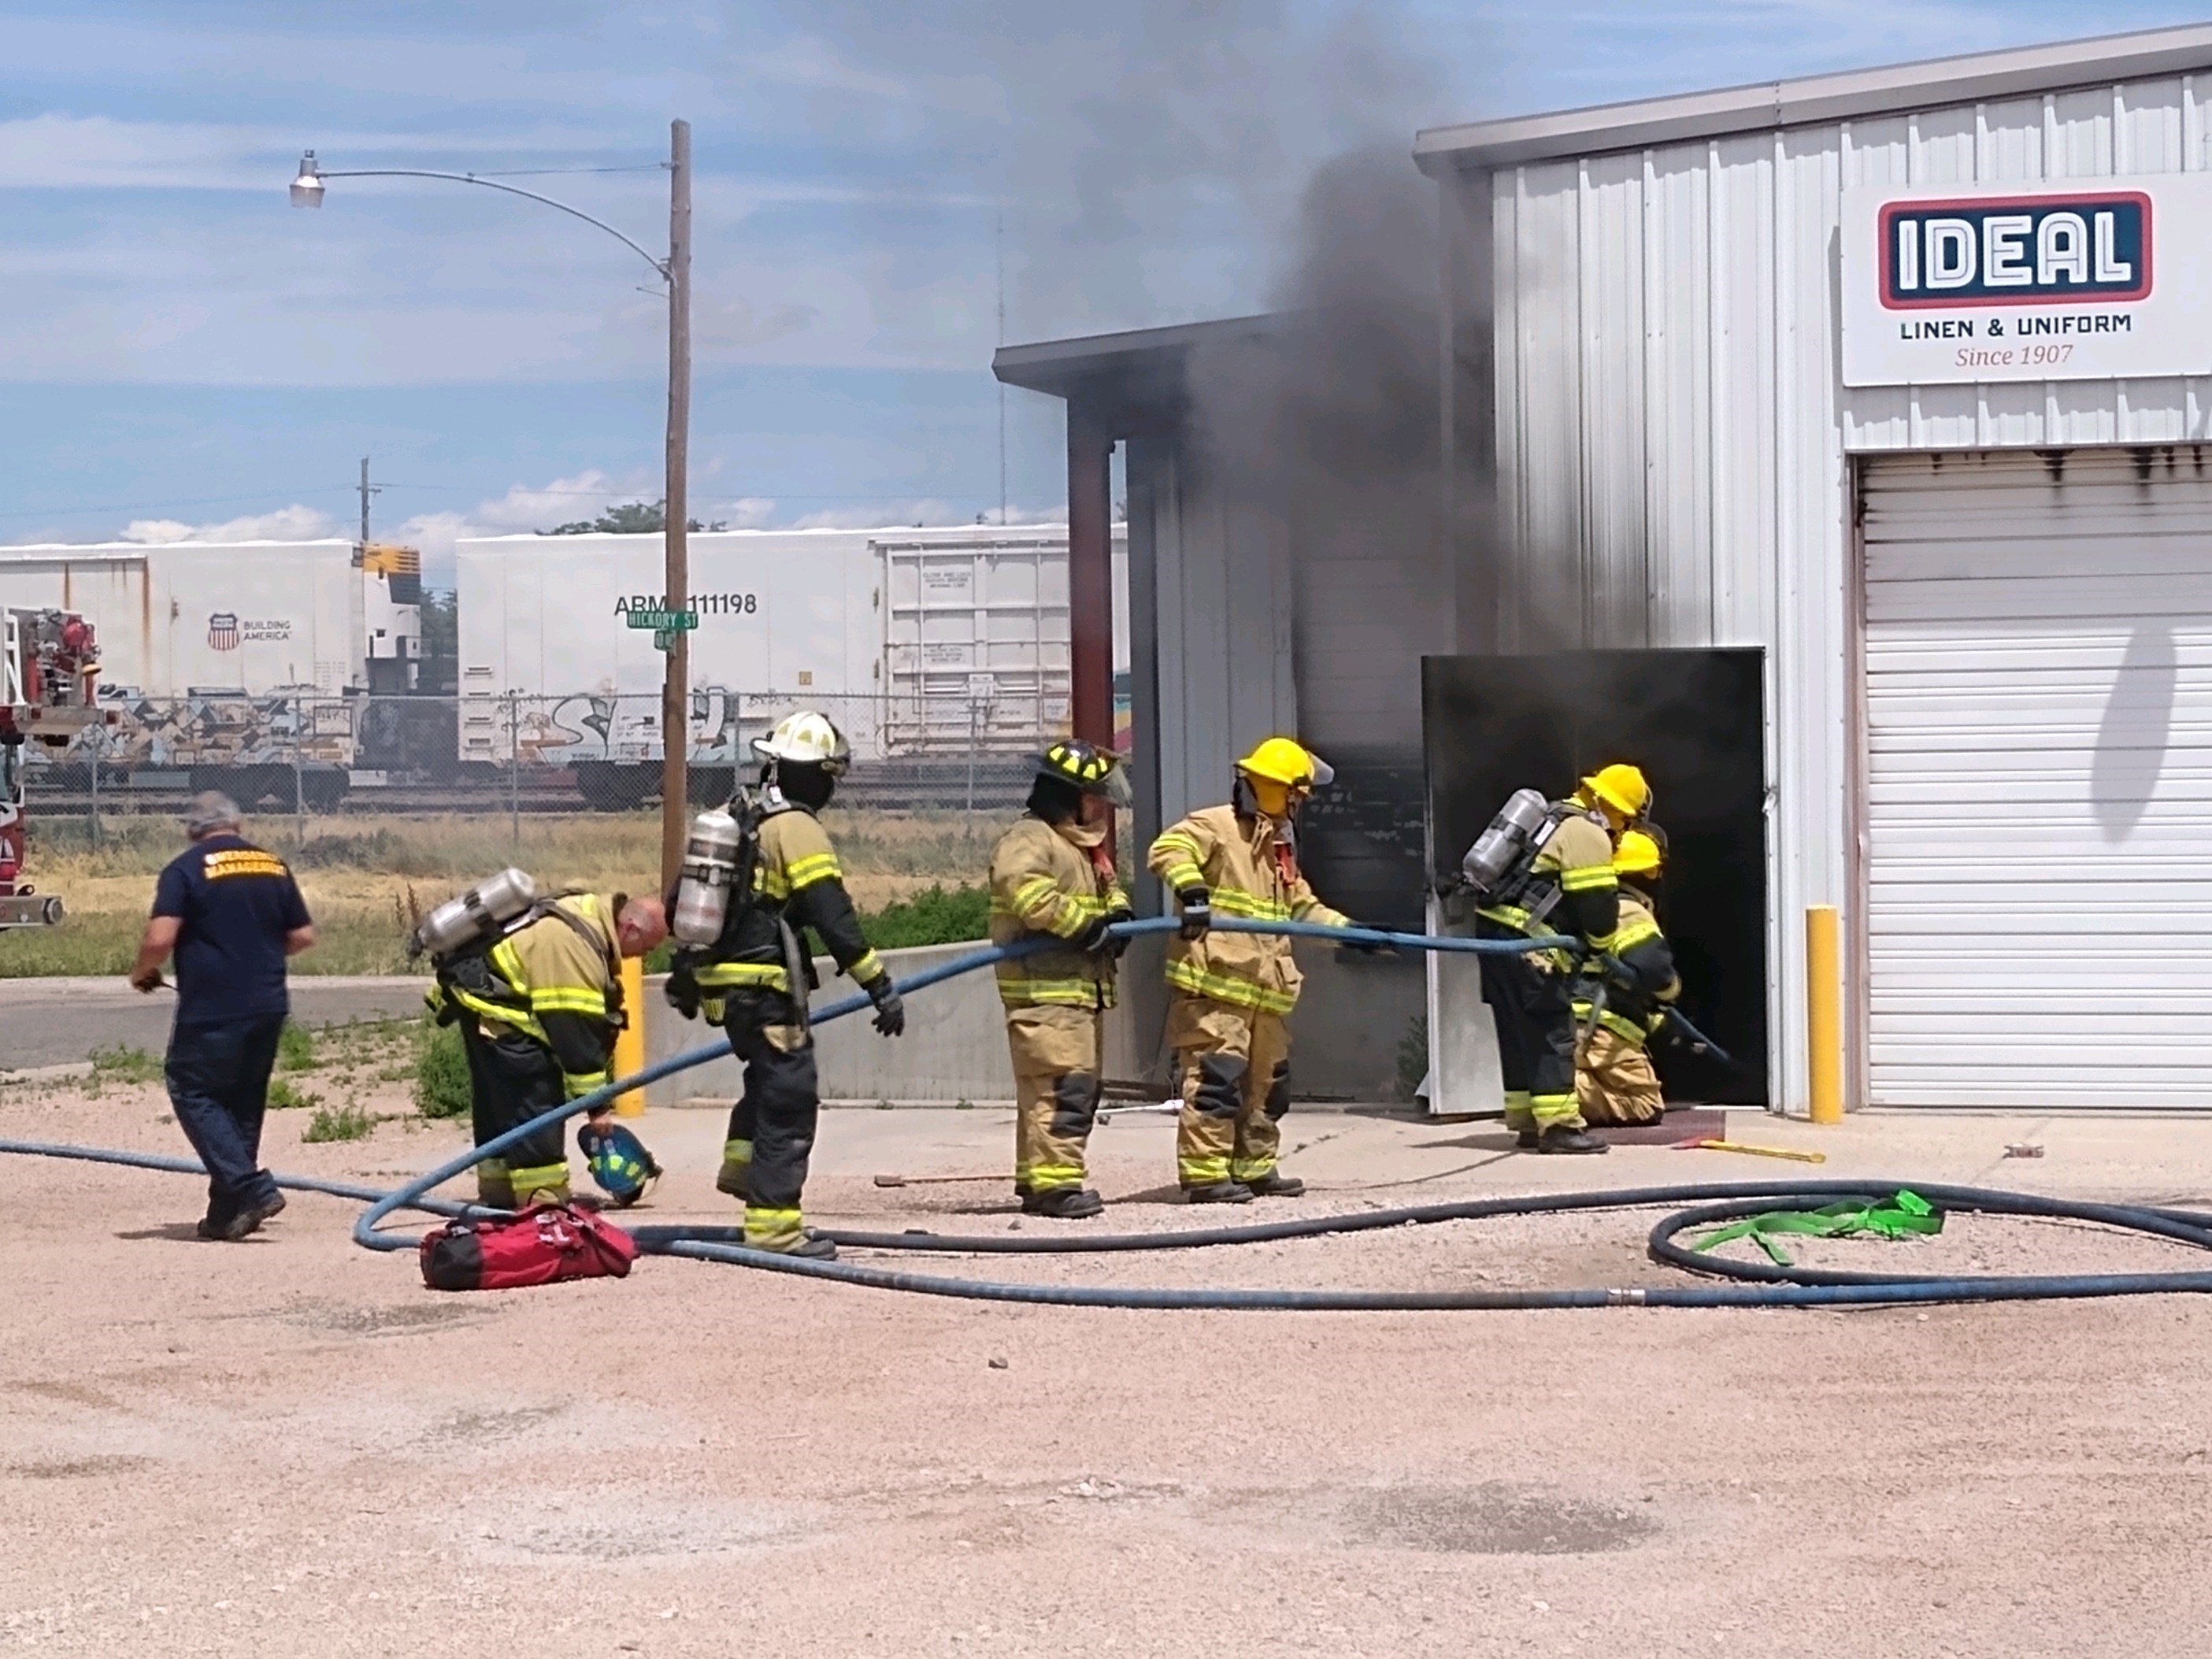 Fire fighters respond to emergency call at Ideal Linen and Uniform in Sidney